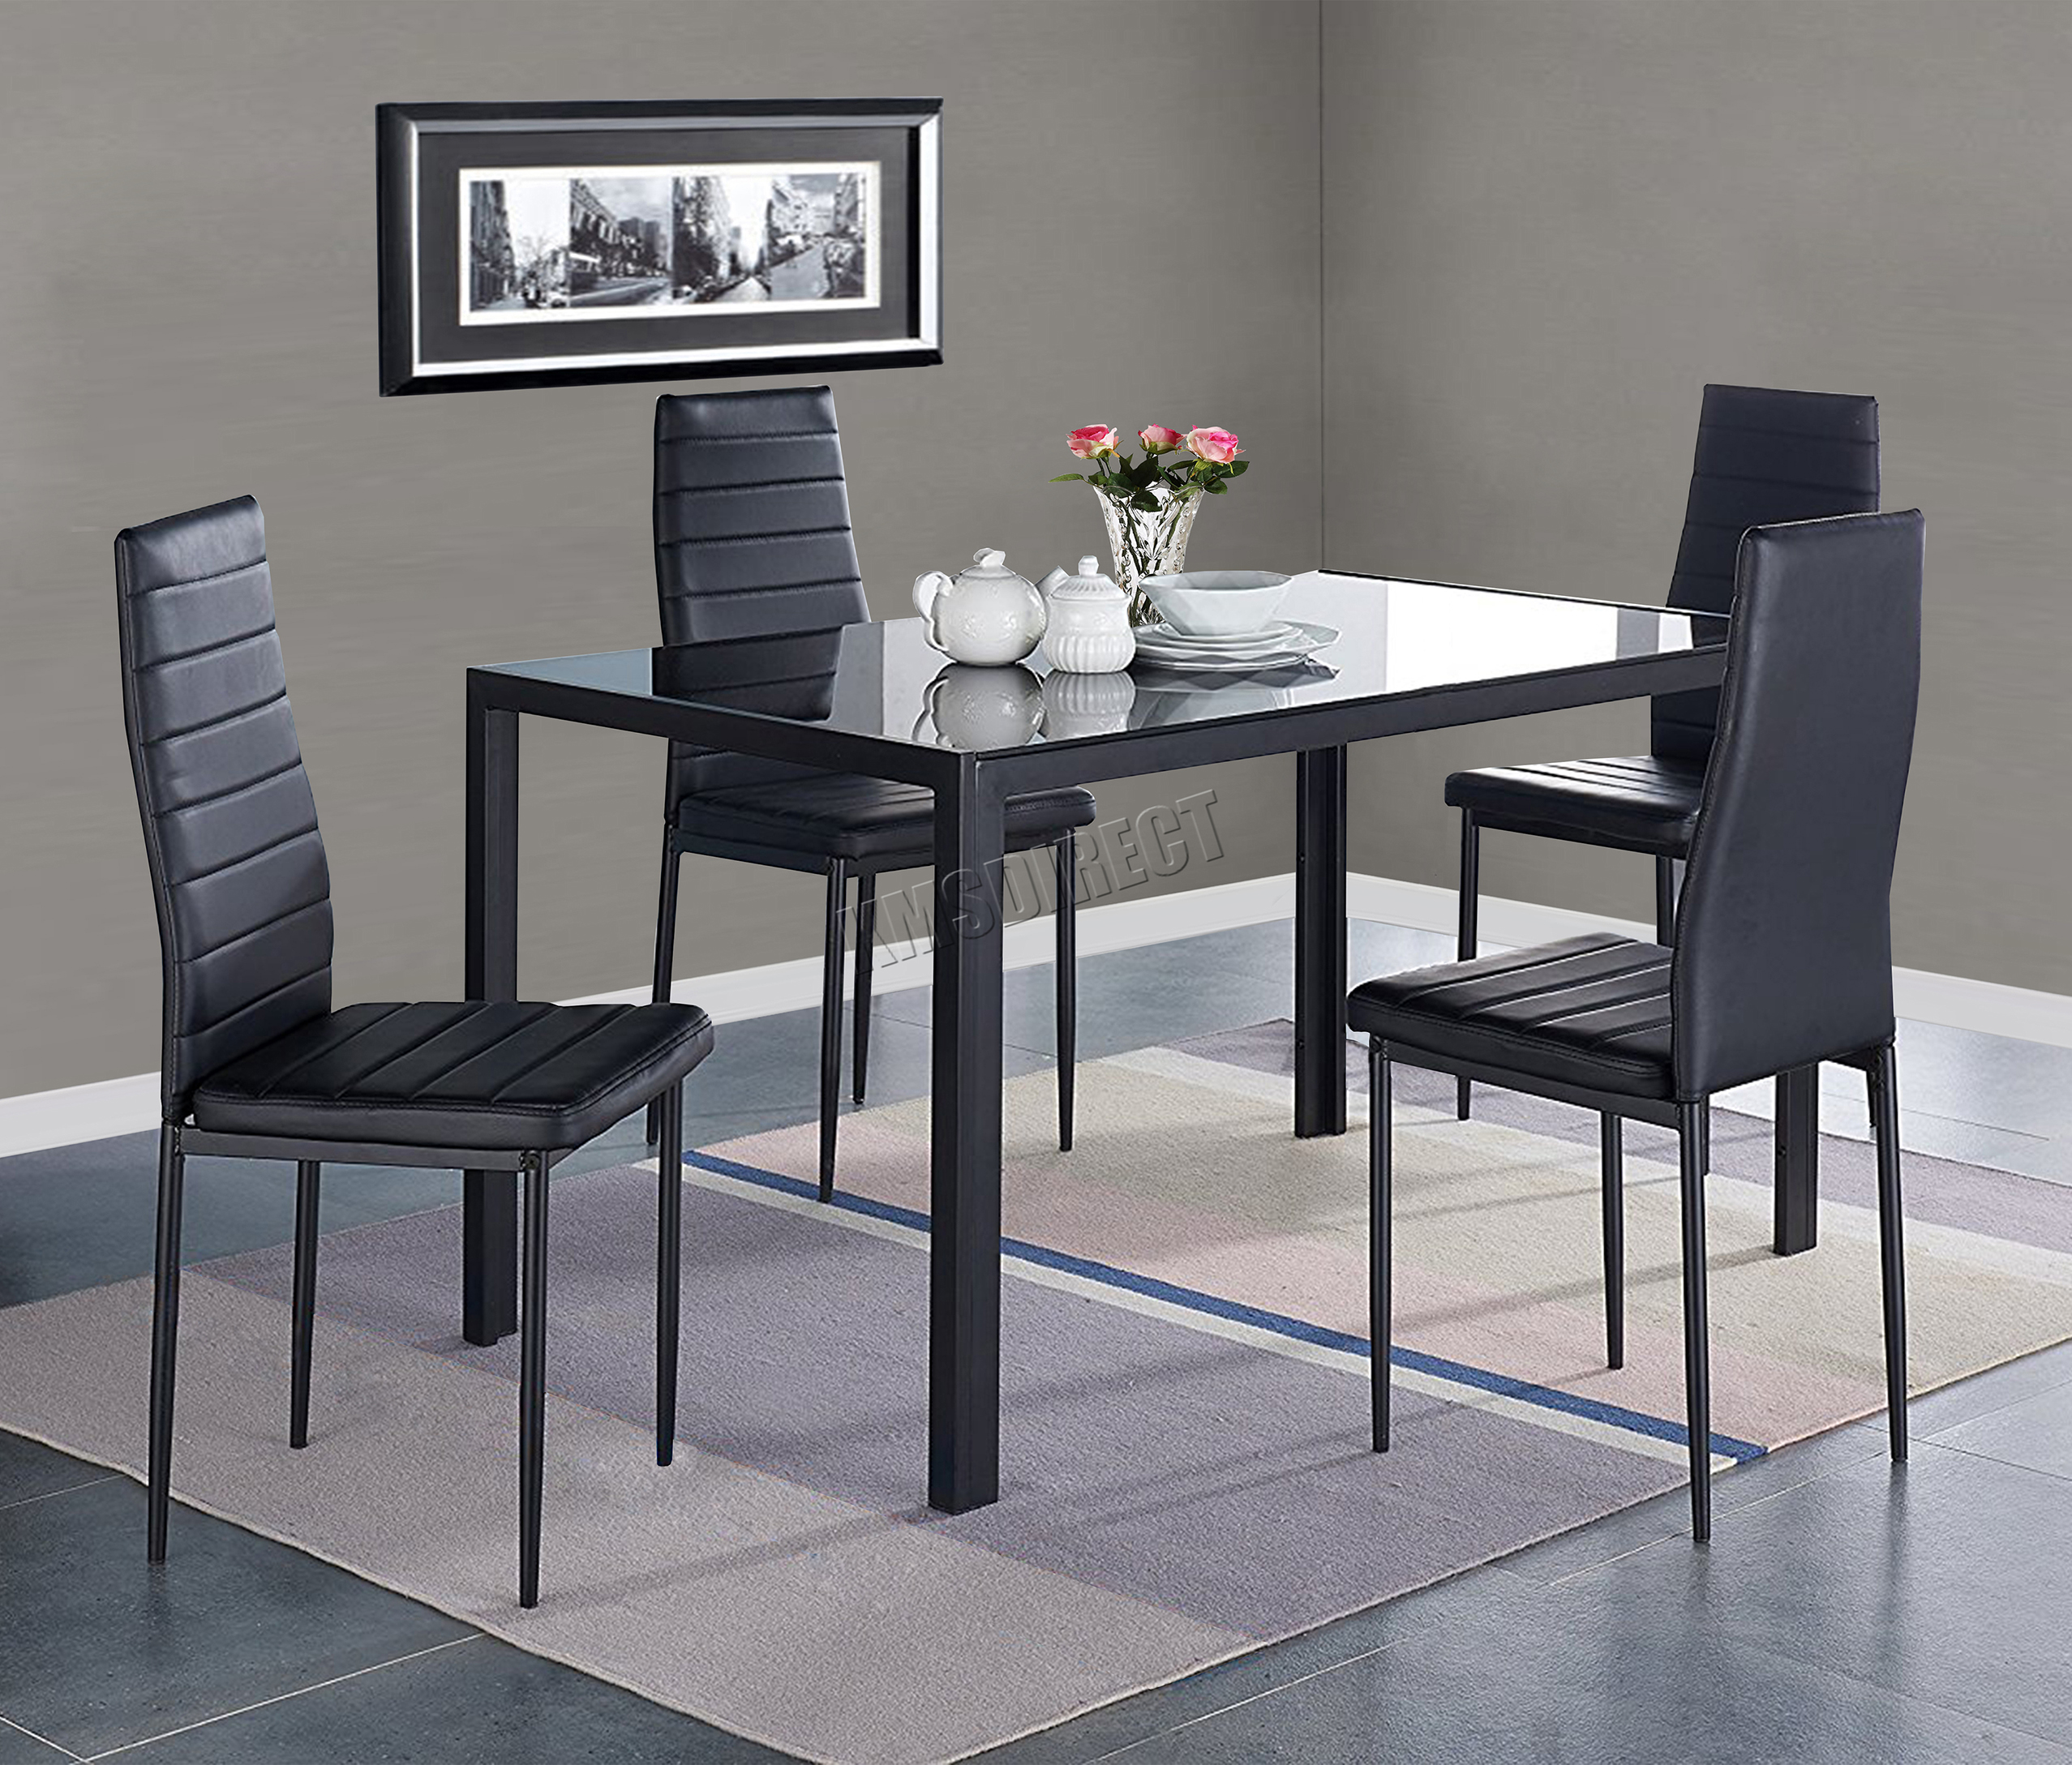 FoxHunter Glass Dining Table With 4/6 Chairs Set Faux